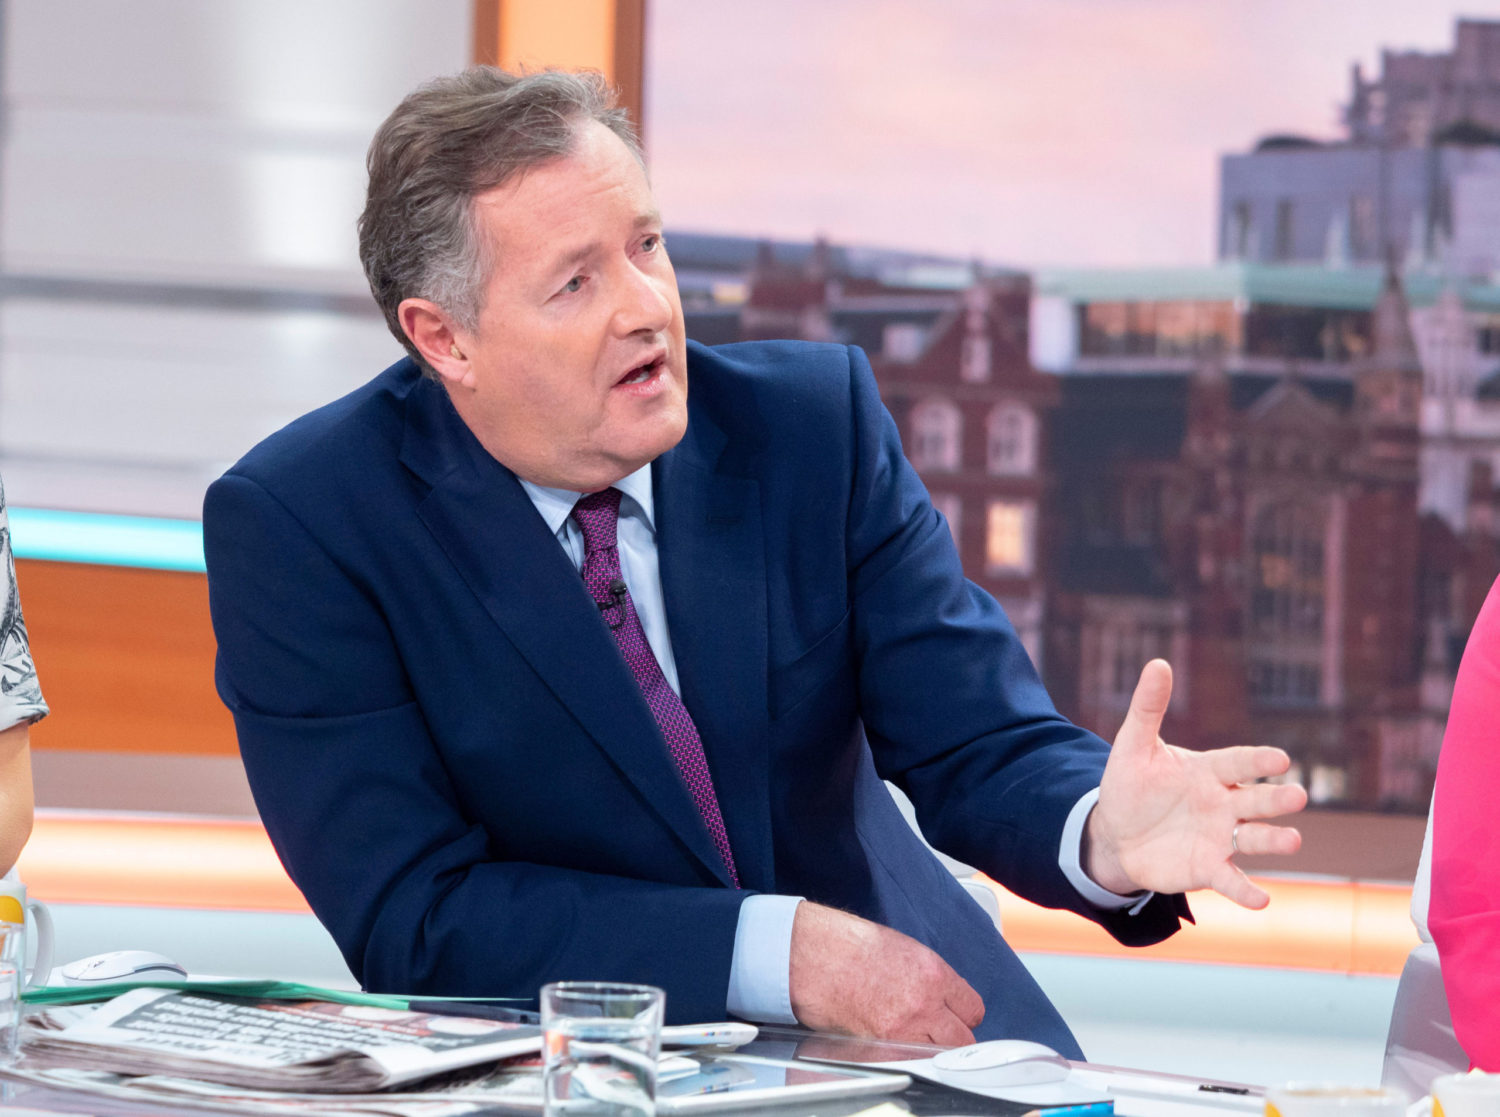 Piers Morgan slams Prince Harry and Meghan Markle for announcing 'zero policy engagement' with newspapers